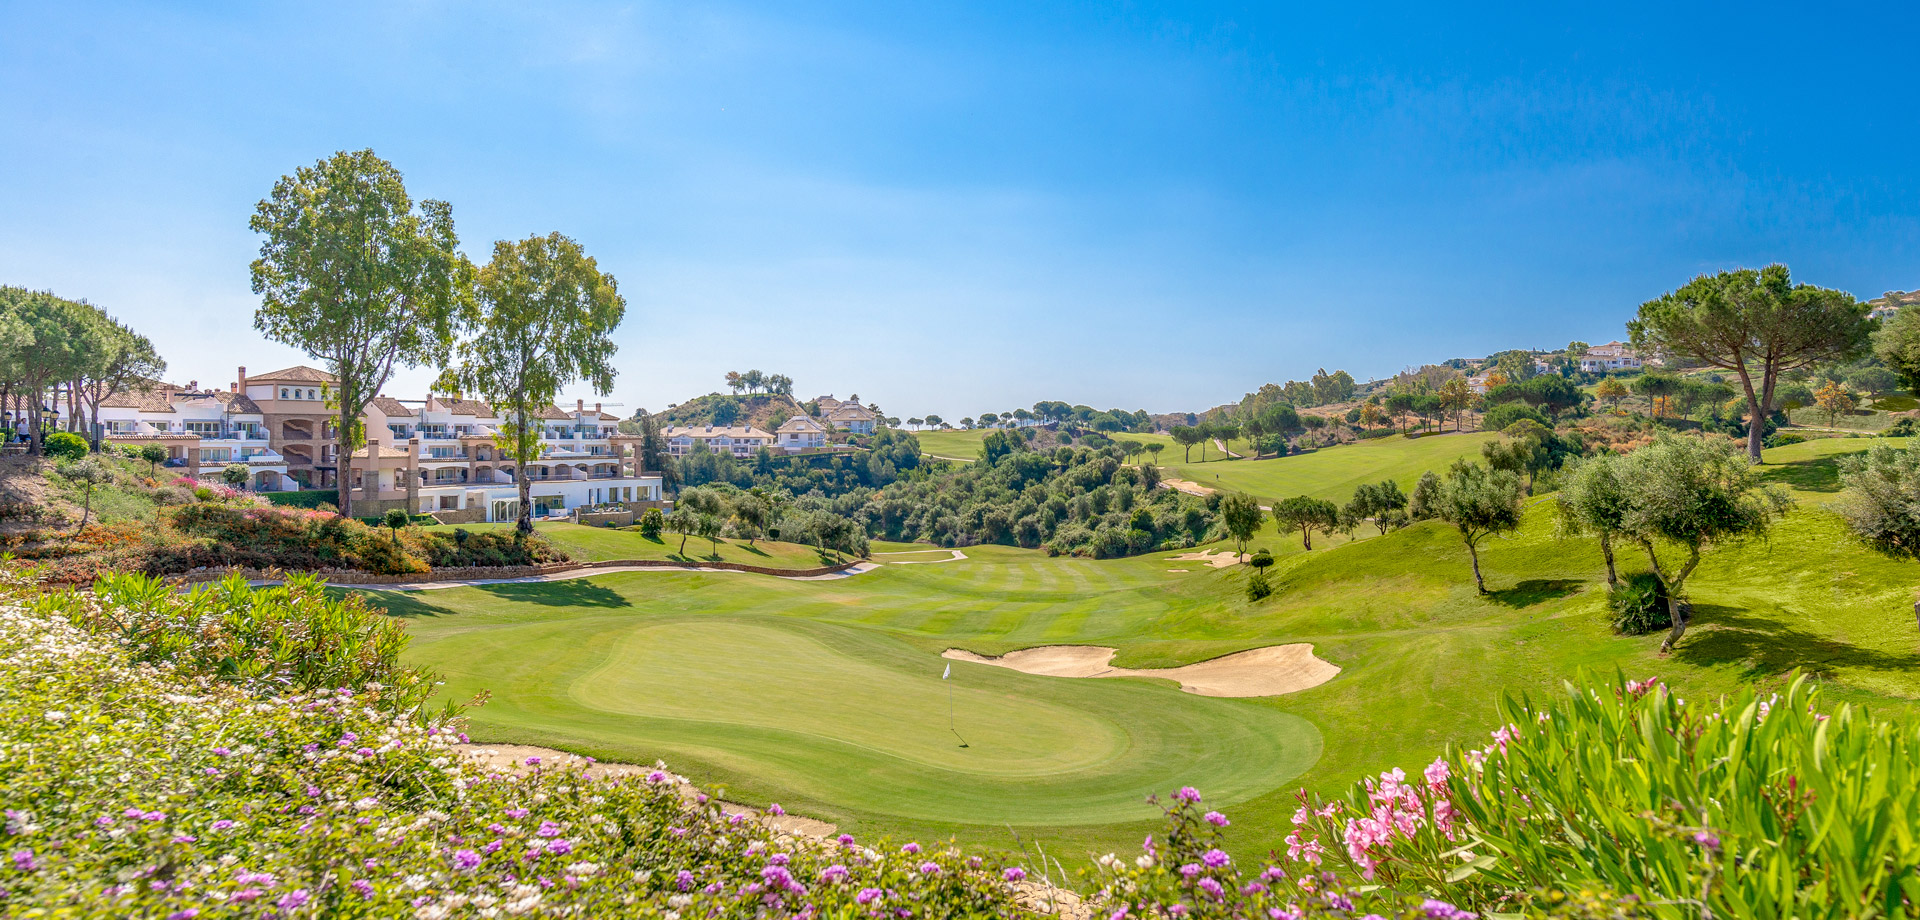 La Cala Resort Hotel & Golf View